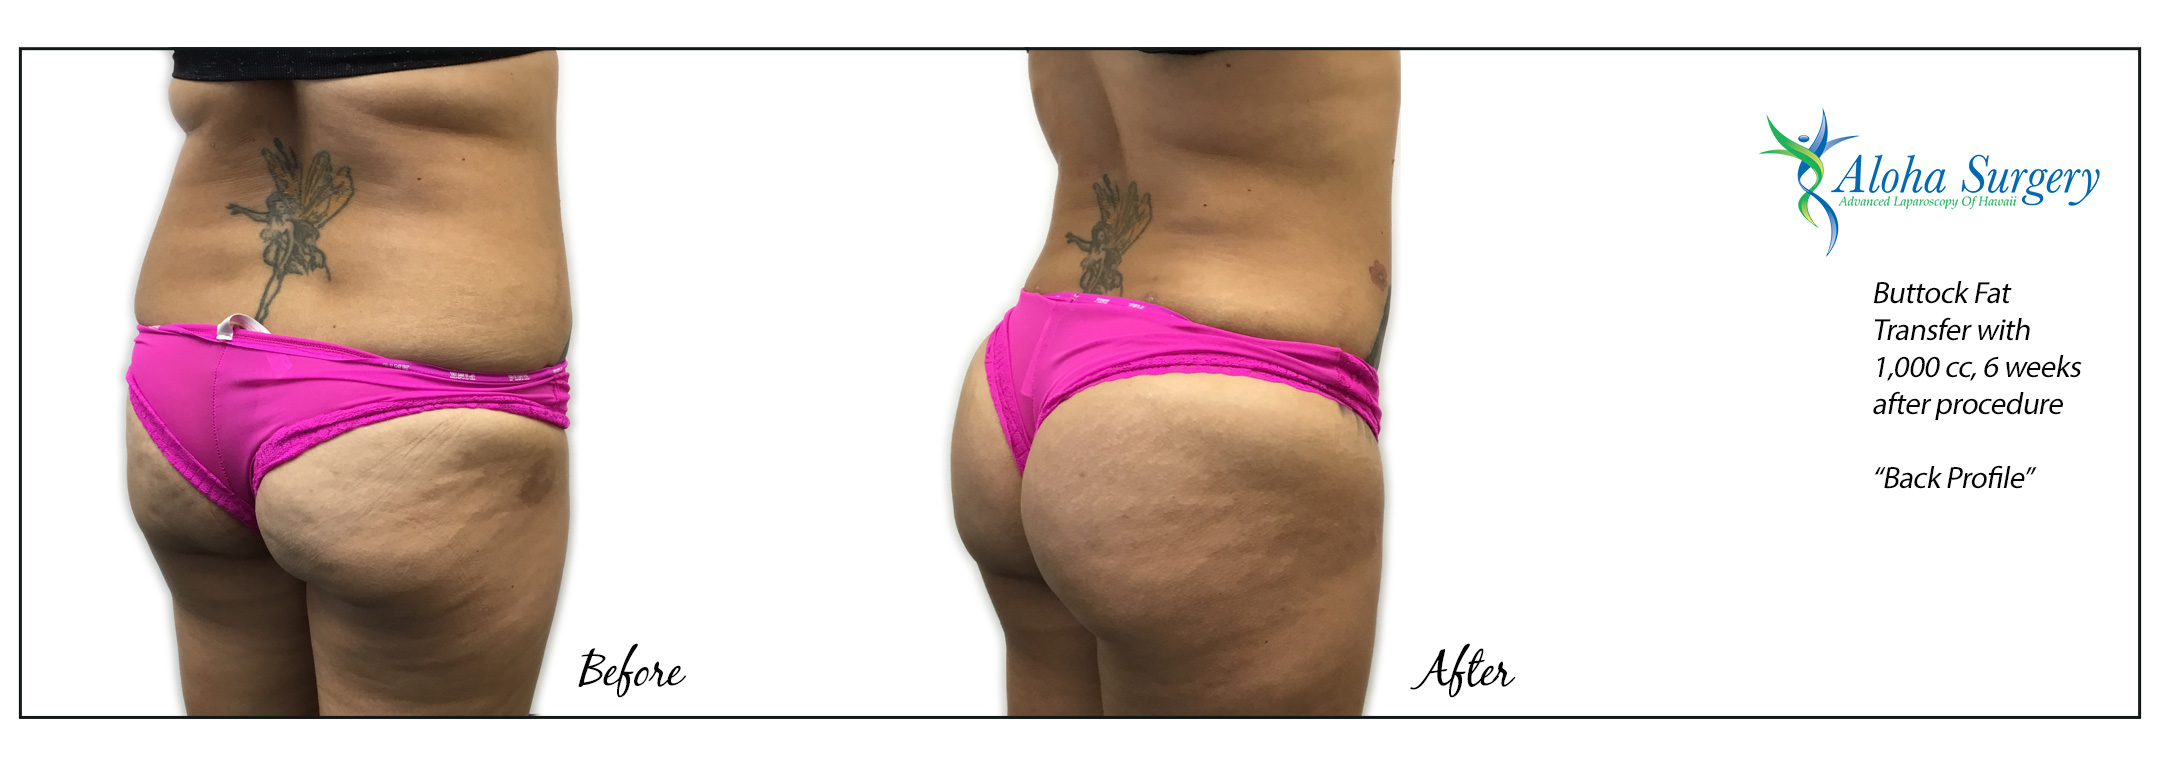 Aloha Surgery Buttock Fat Transfer